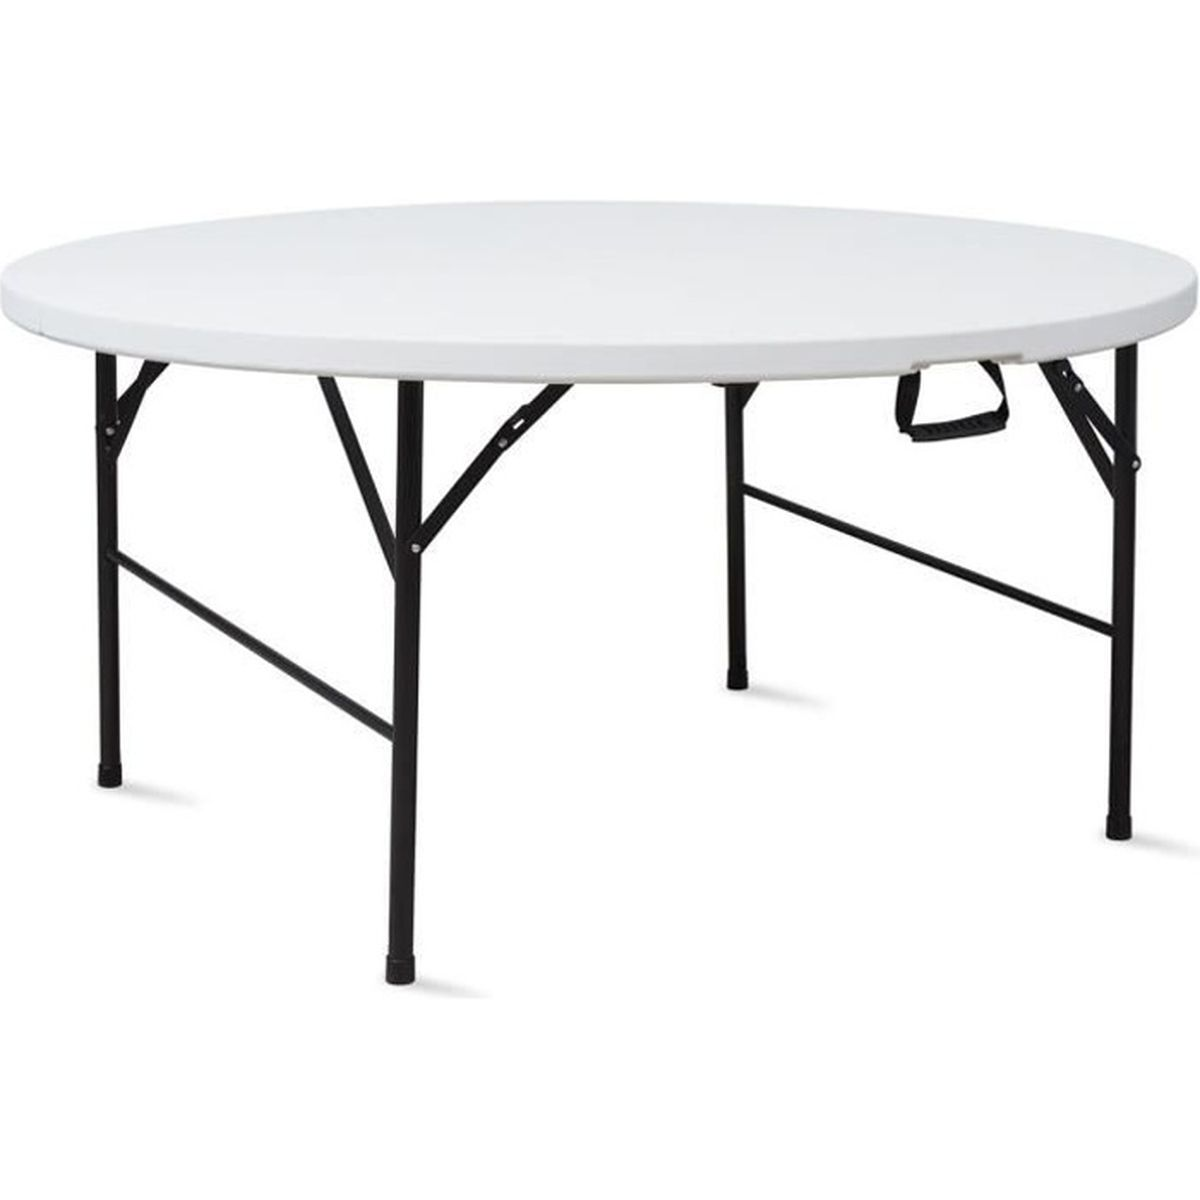 table pliante ronde 180 cm portable achat vente table. Black Bedroom Furniture Sets. Home Design Ideas